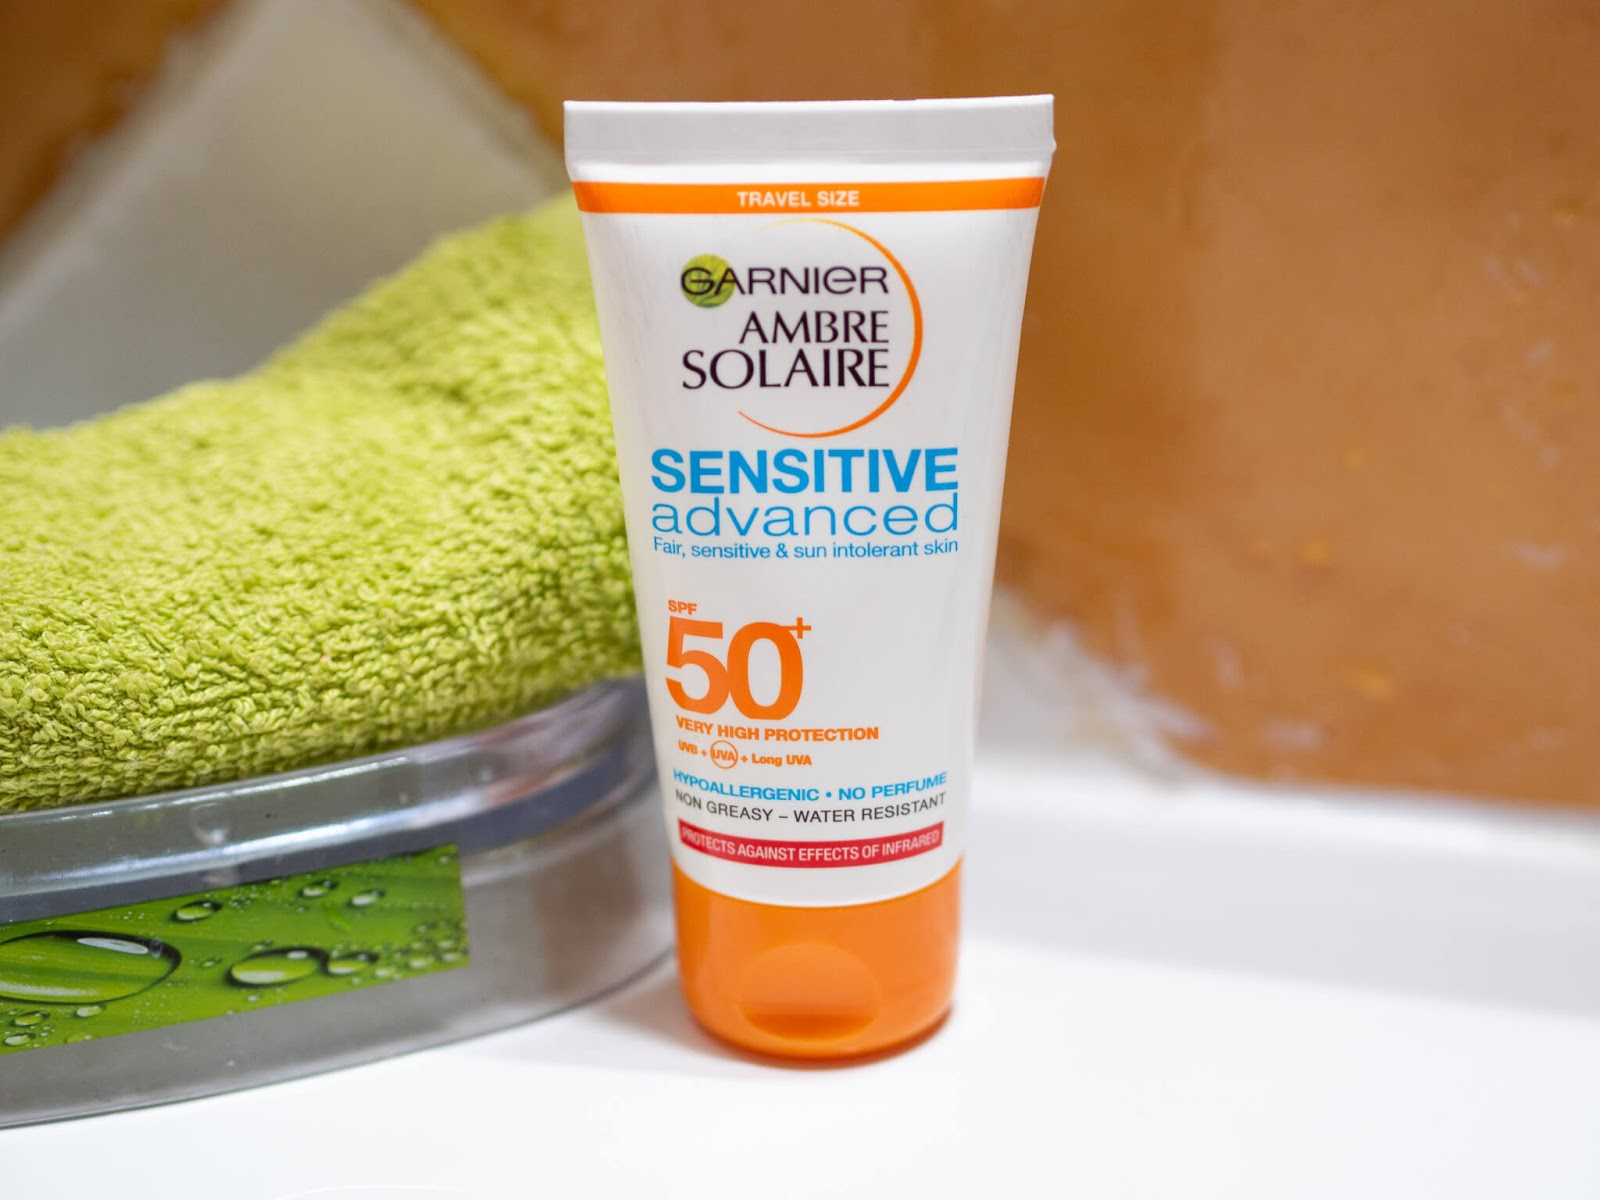 Garnier sensitive SPF review